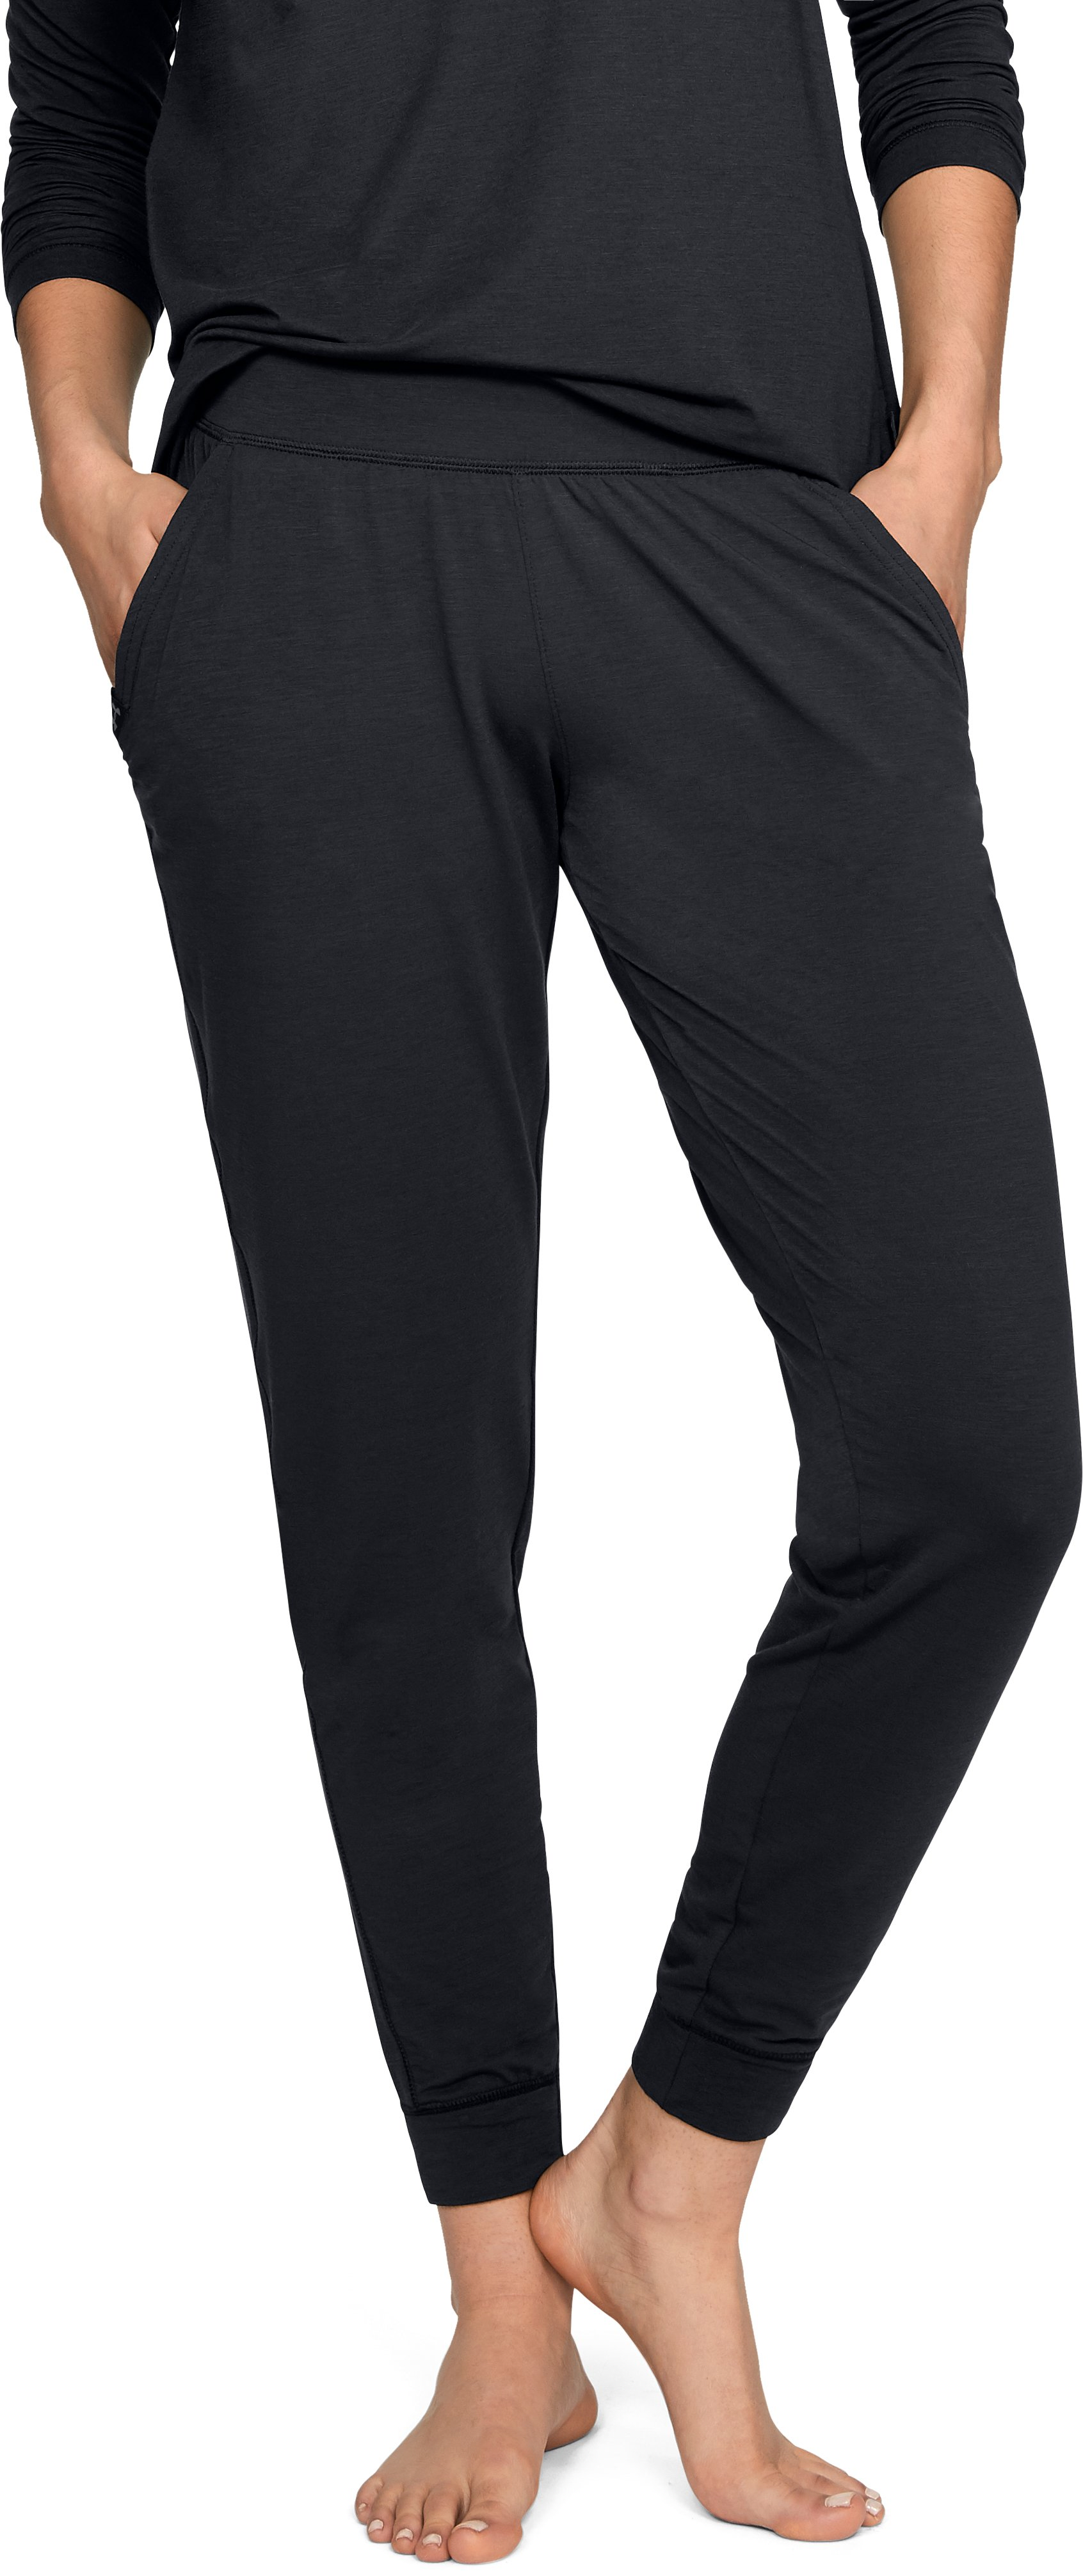 Women's Athlete Recovery Sleepwear Joggers, Black ,